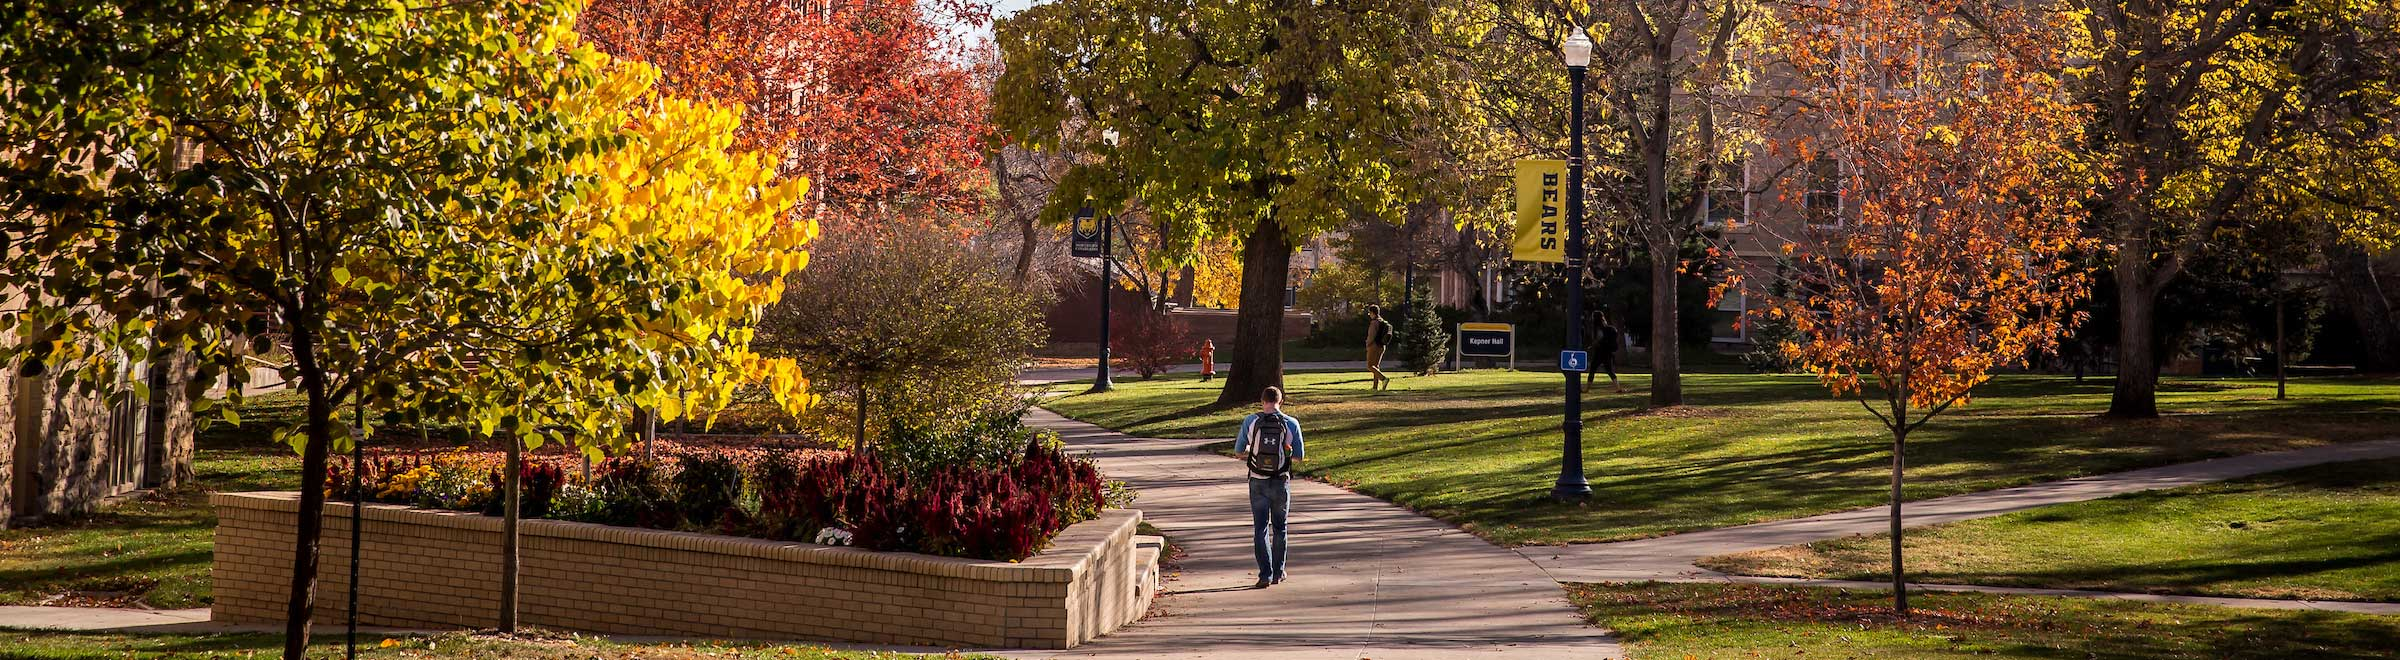 University of Northern Colorado Campus